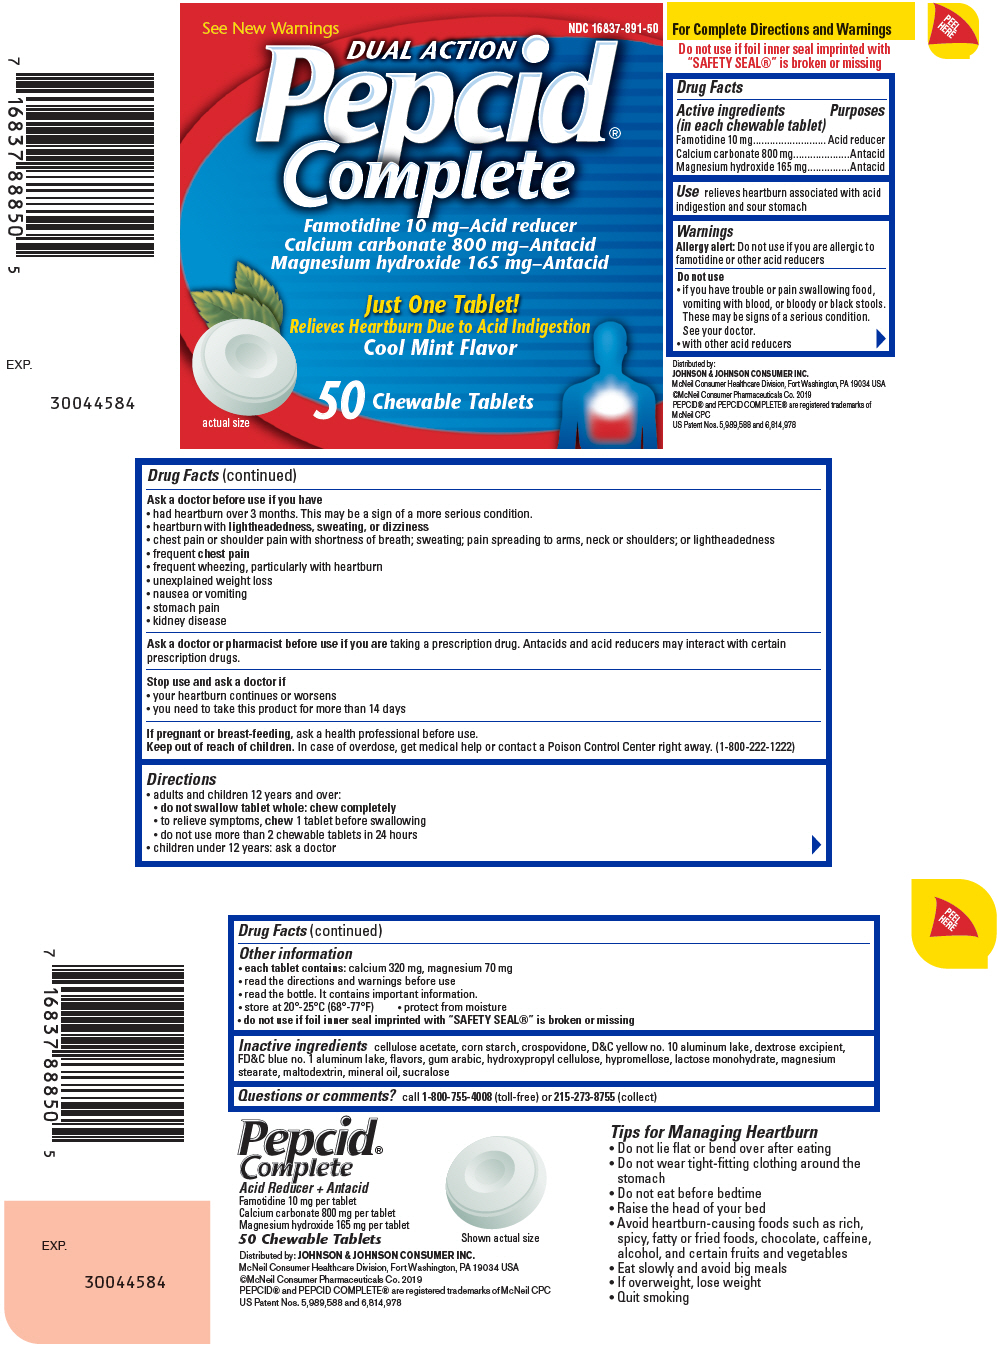 Pepcid Complete Information Side Effects Warnings And